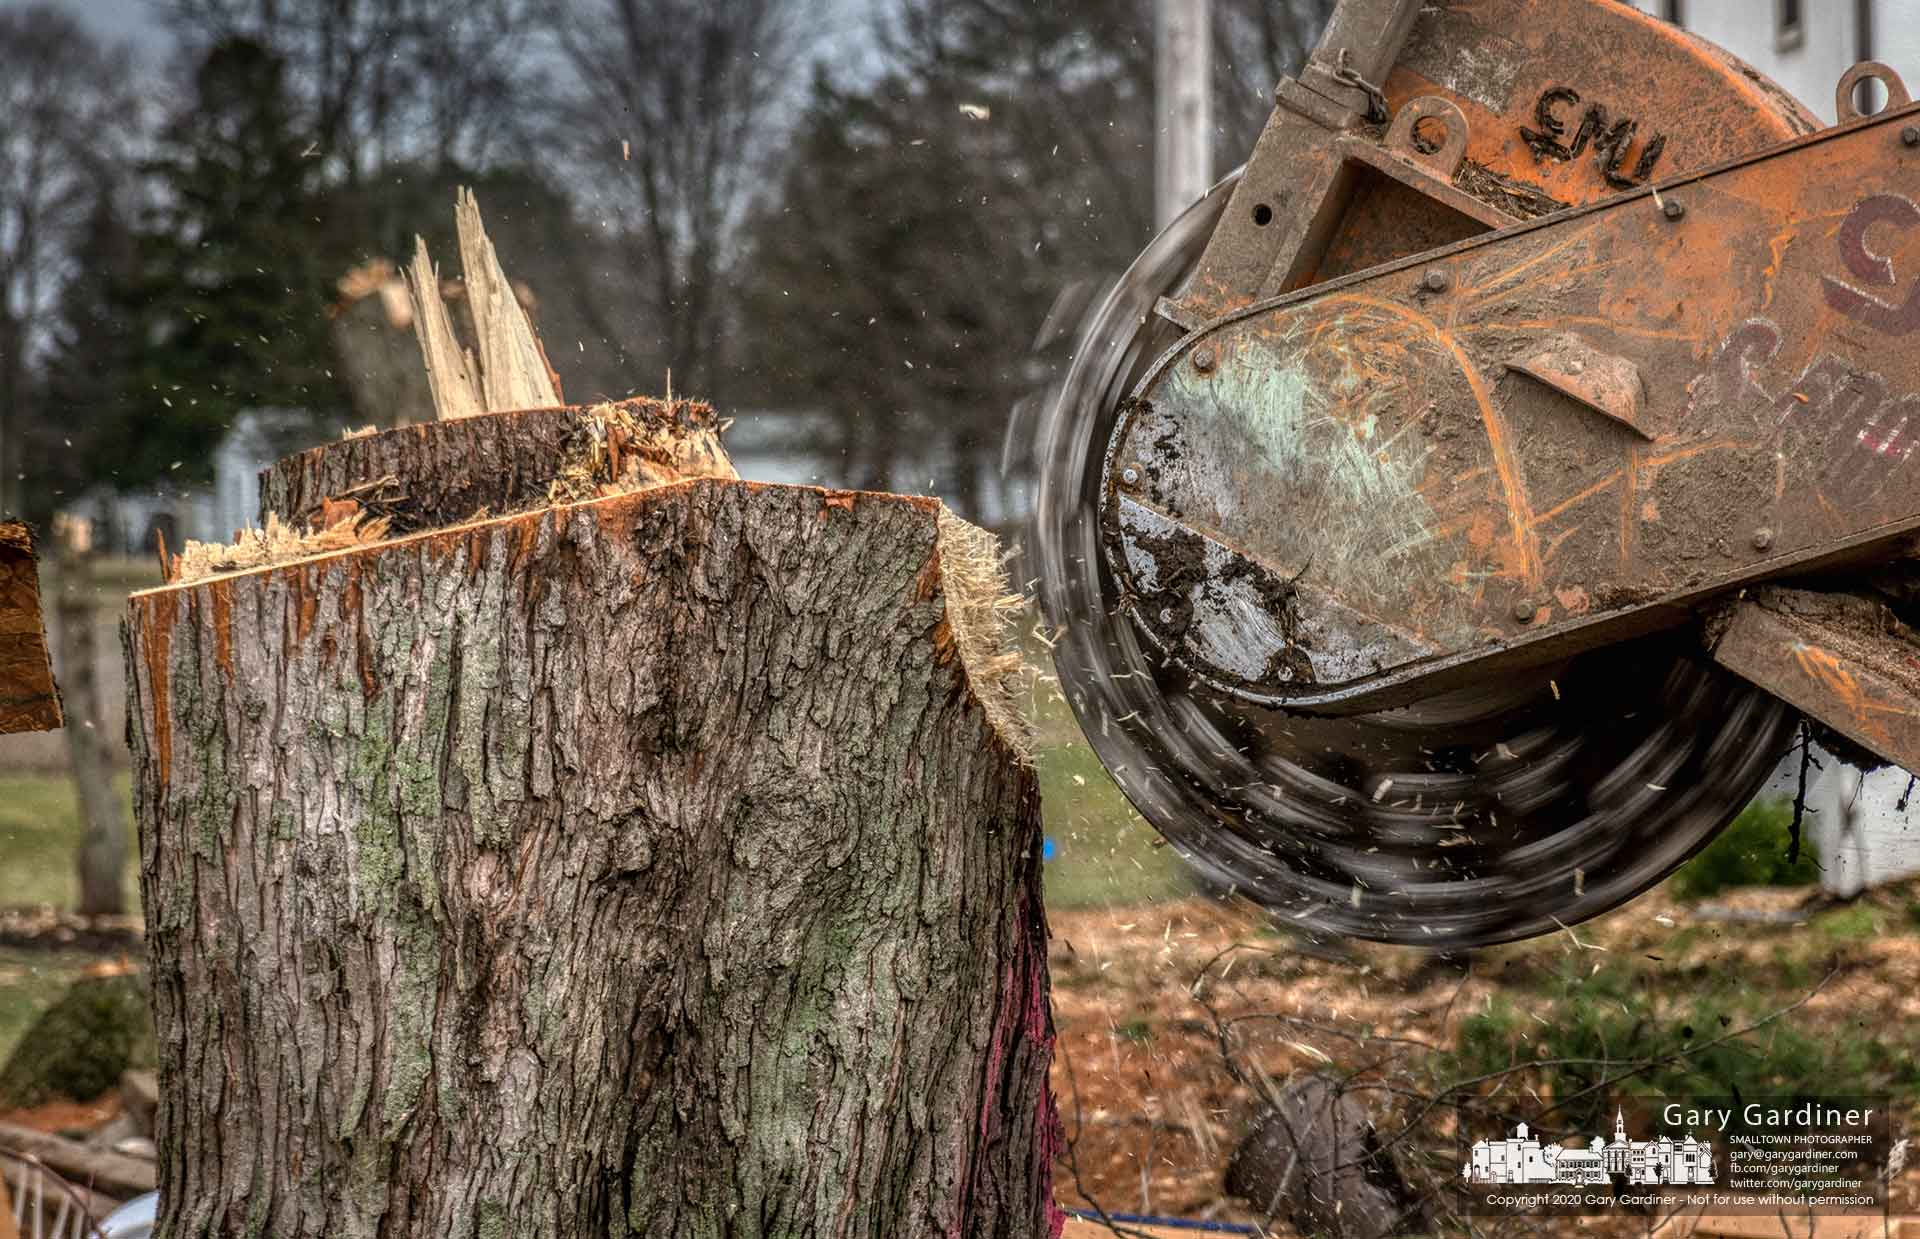 A stump grinder begins the process to reduce a silver maple tree stump to sawdust as clearing operations continue at property along Africa Road for a skilled-nursing medical facility. My Final Photo for March 10, 2020.